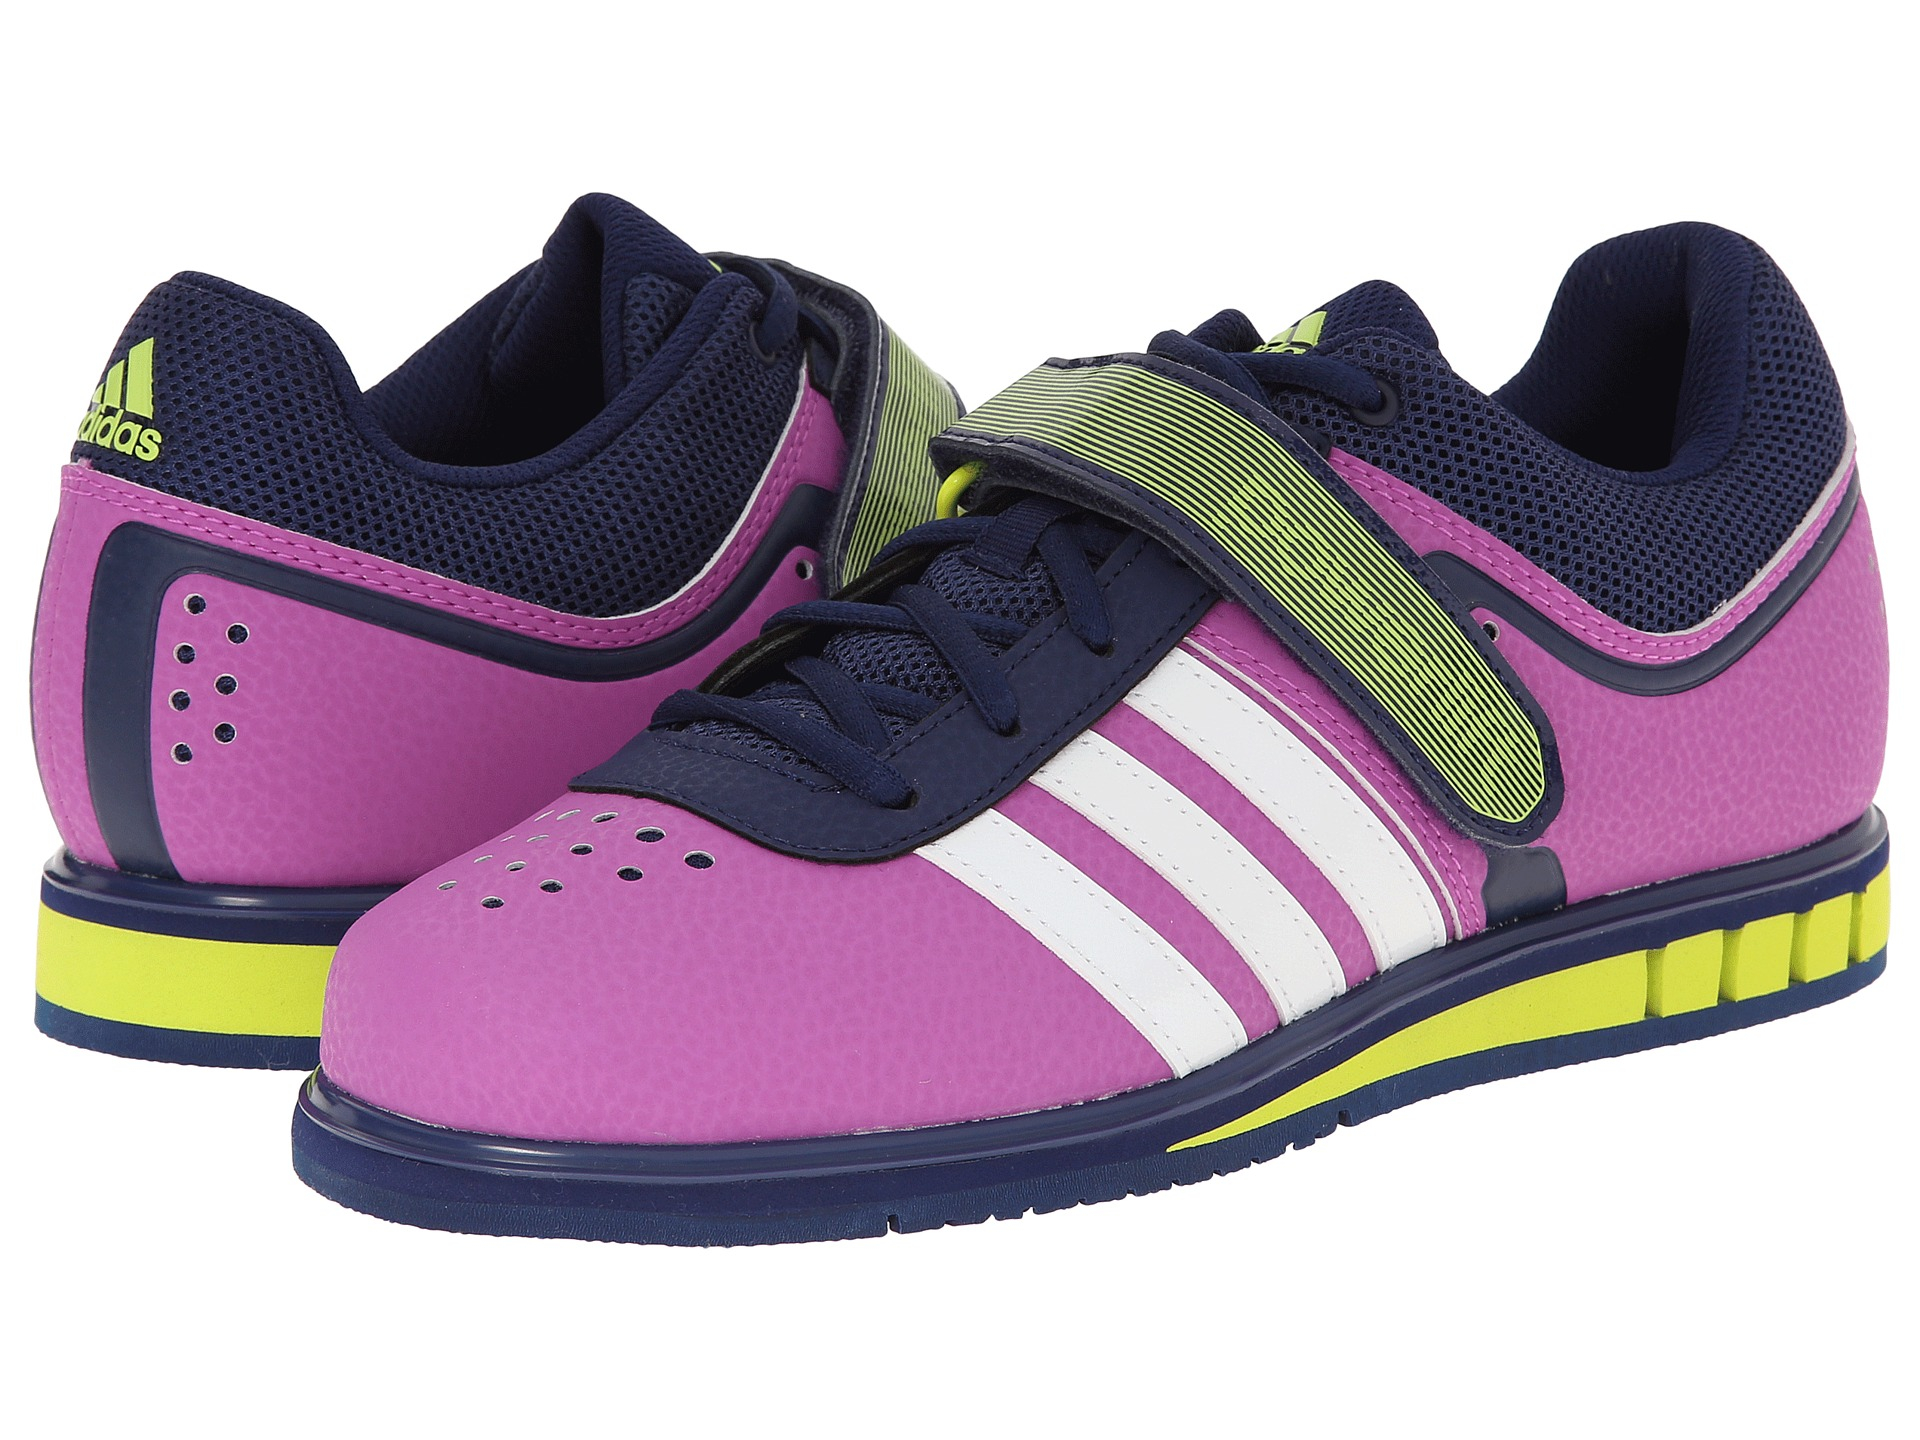 Adidas Power Lift Trainer Shoes Review